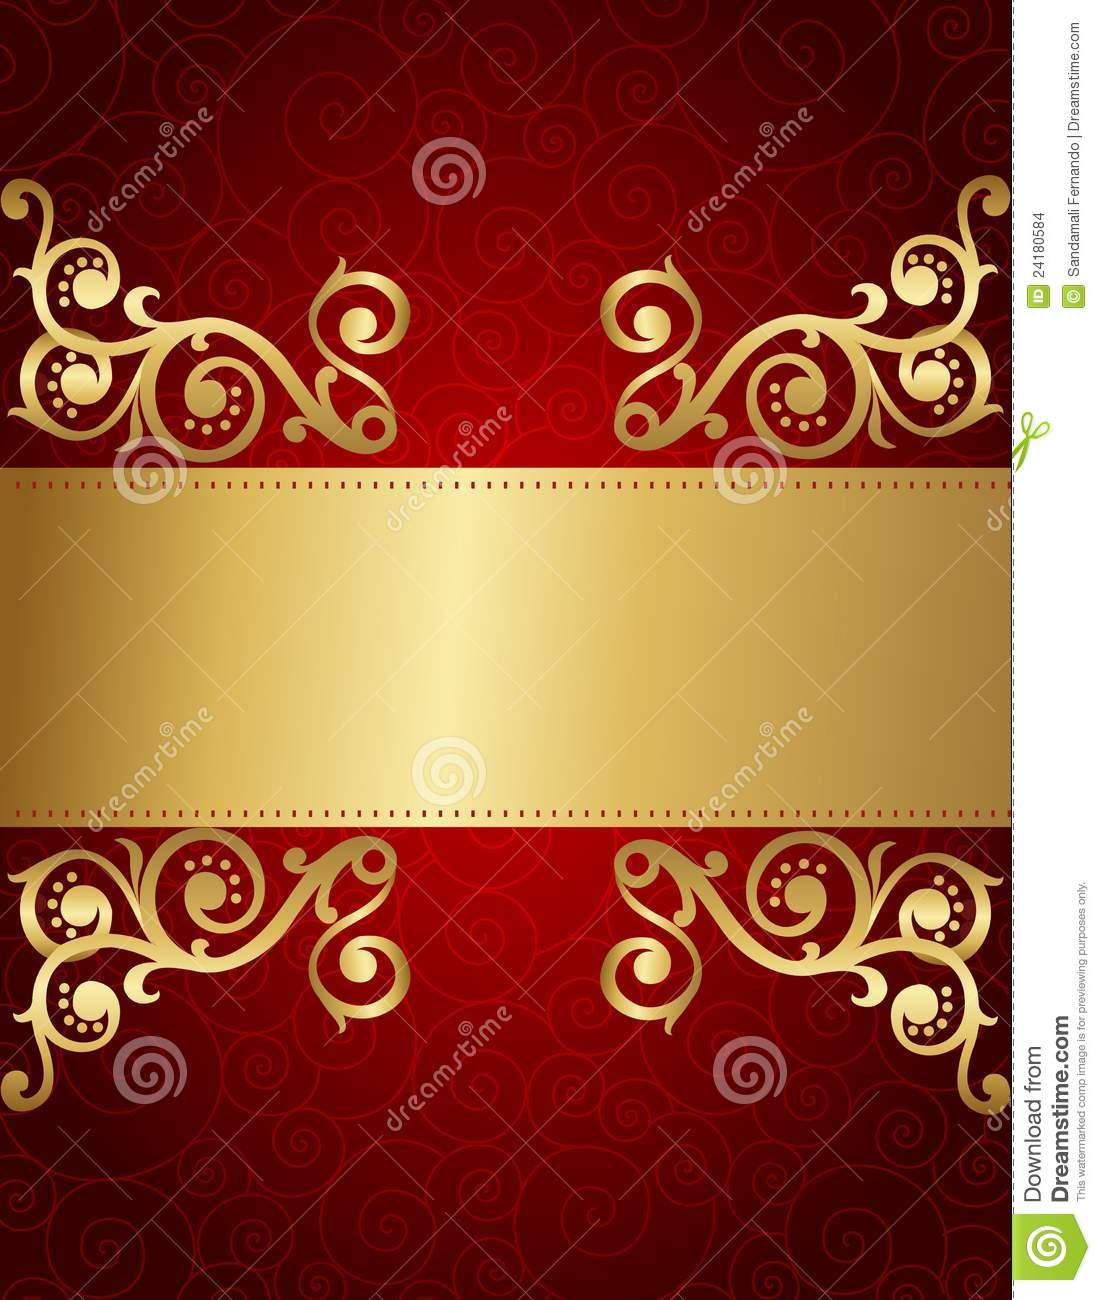 Retro Invitation Background Stock Vector - Illustration of dark ...